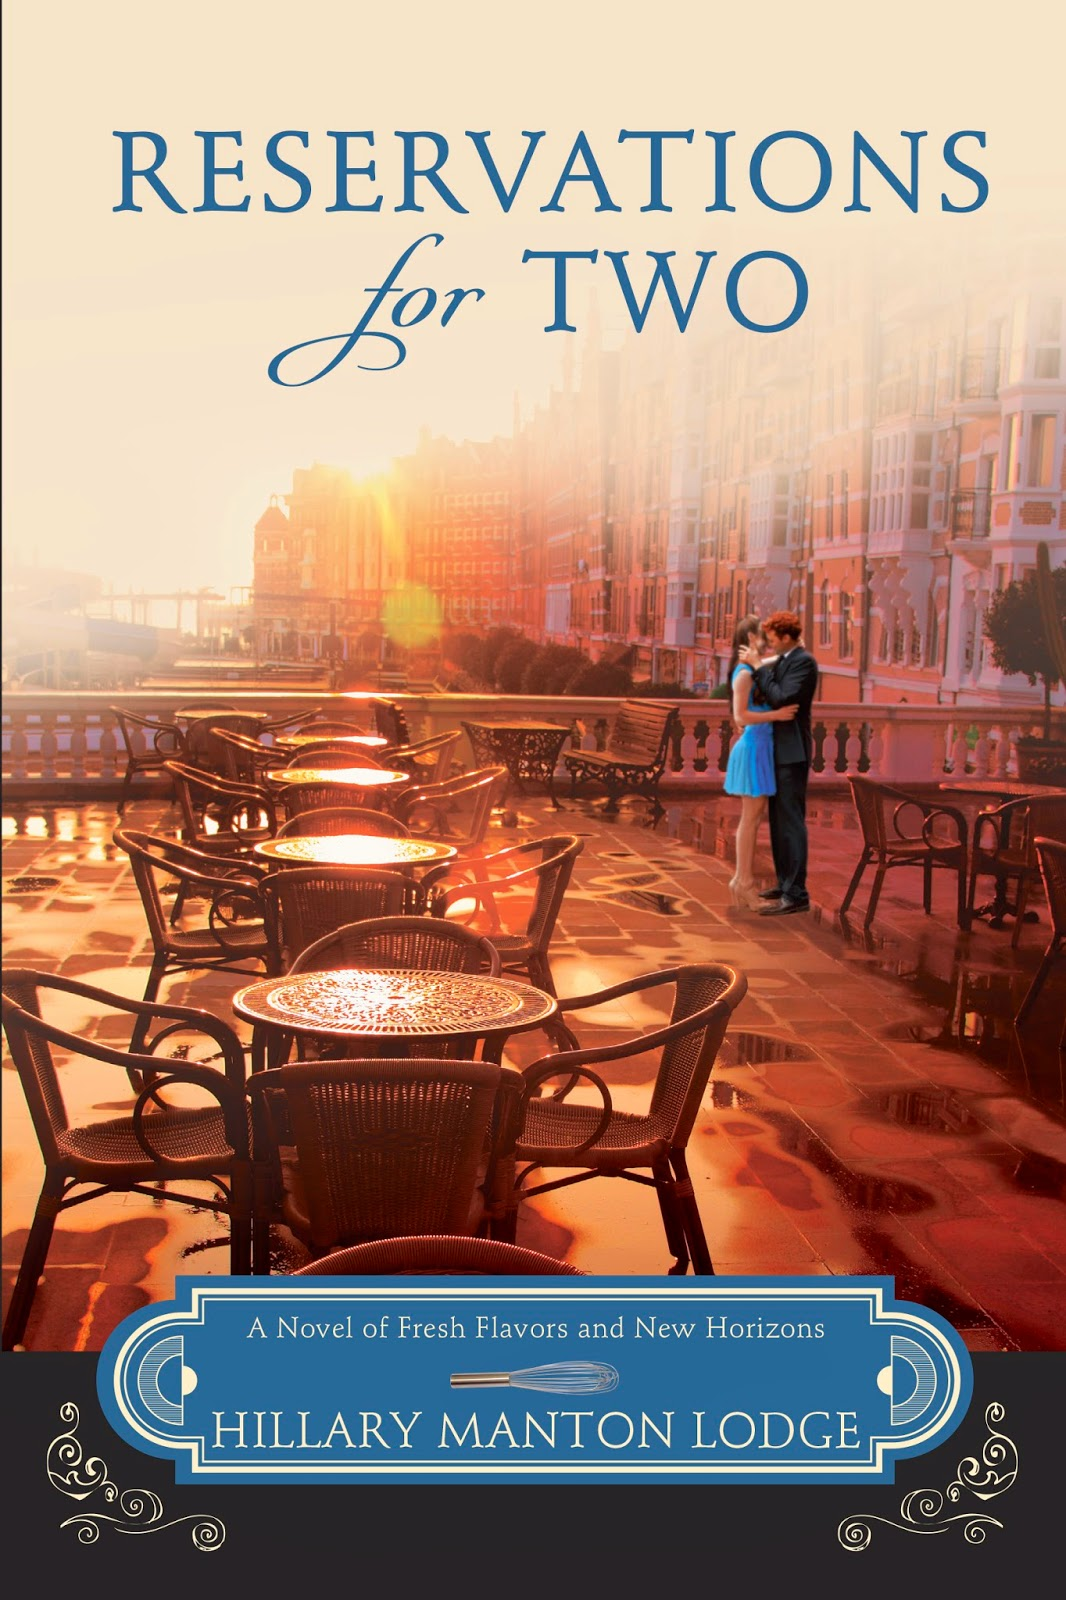 'Reservations for Two': Book Two in the Blue Doors Trilogy. A review of the 2015 novel by Hillary Manton Lodge. All text © Rissi JC